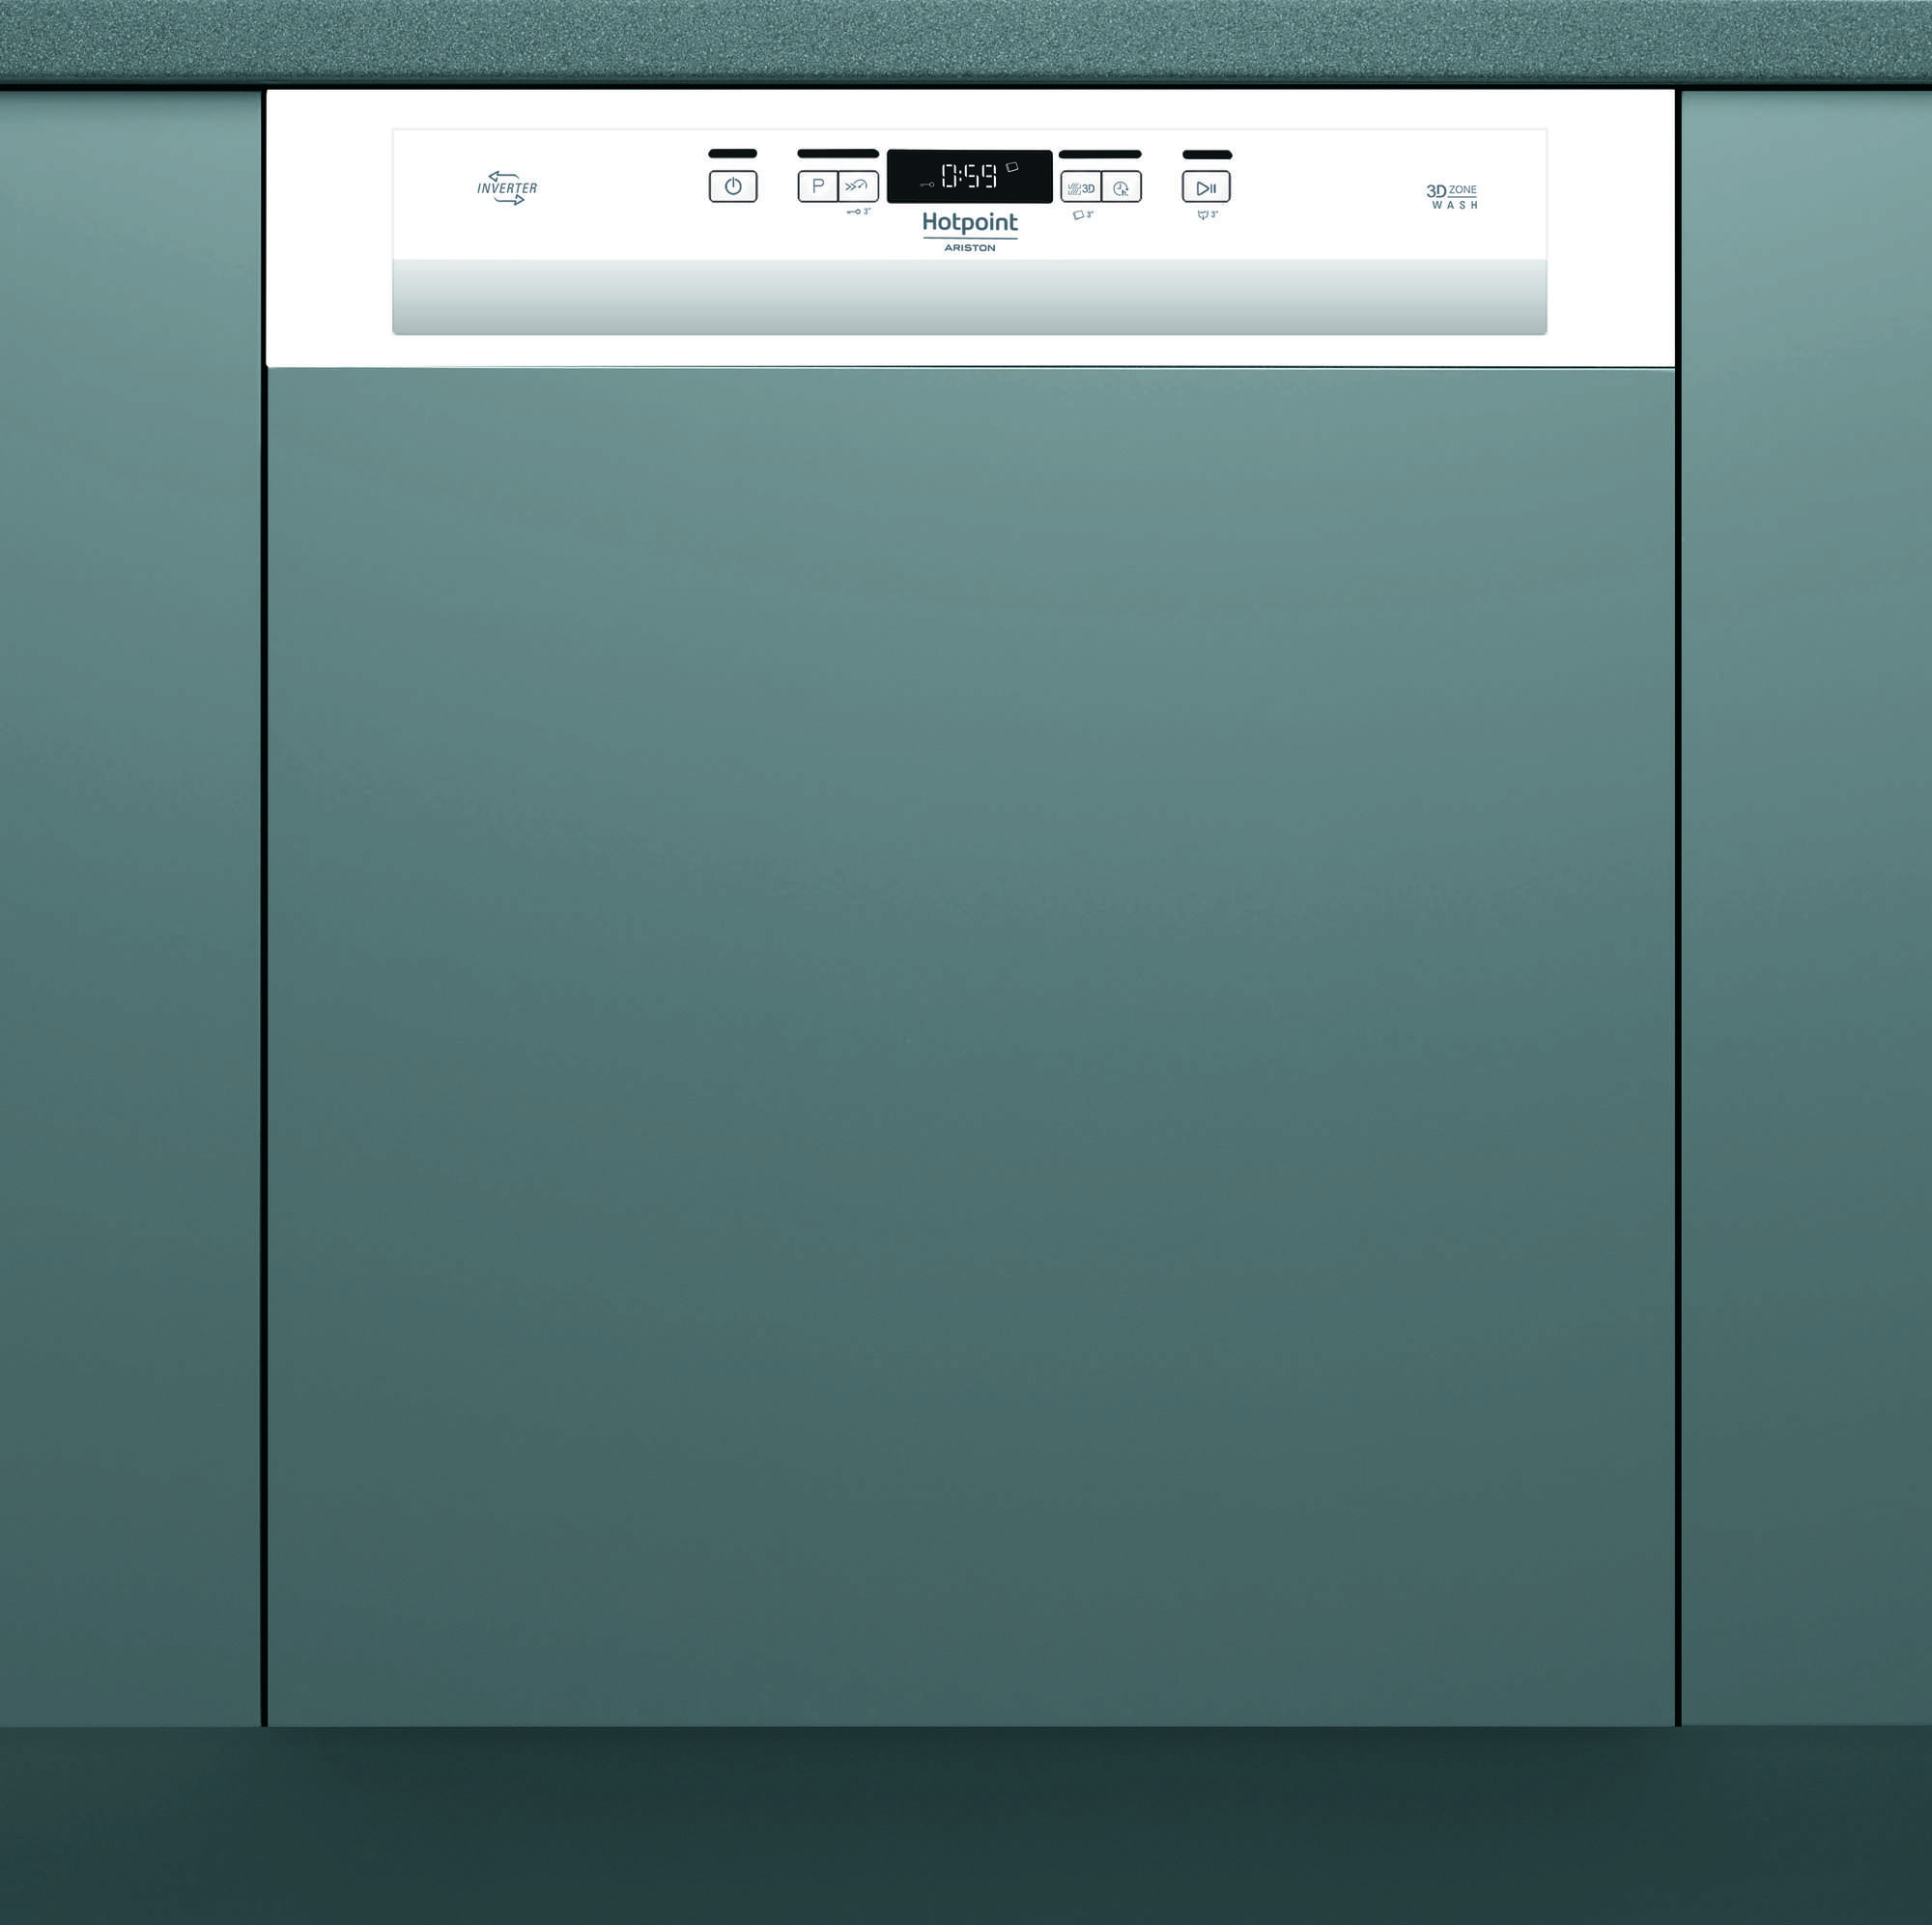 Marque Hotpoint Lave Vaisselle Hotpoint Darty